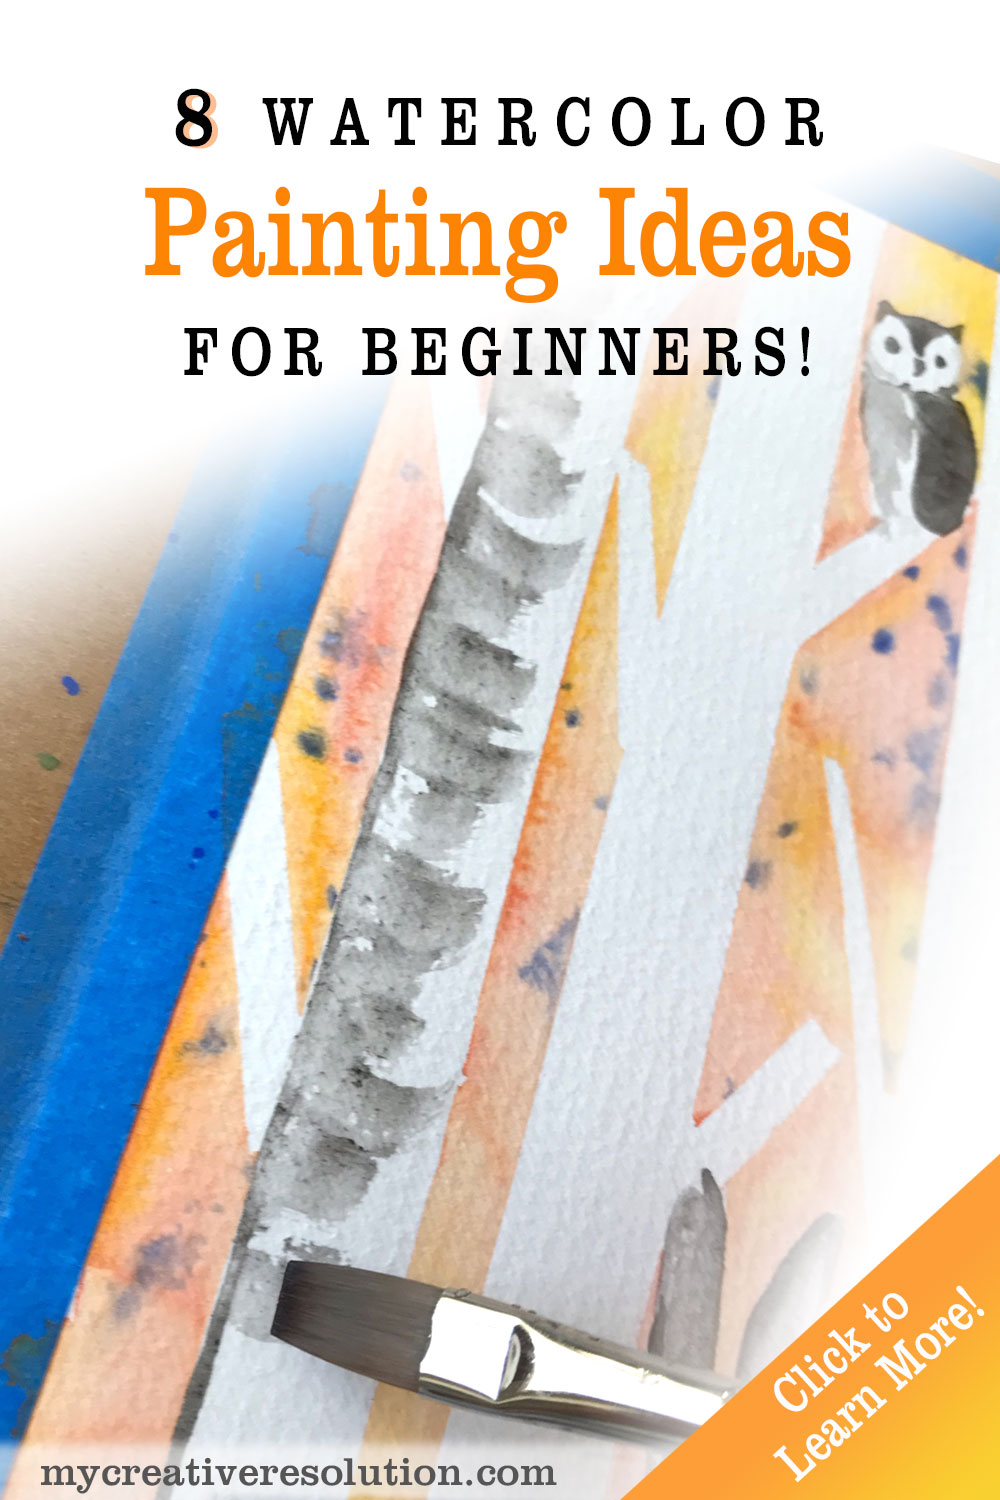 Eight Watercolor Painting Ideas for Beginners